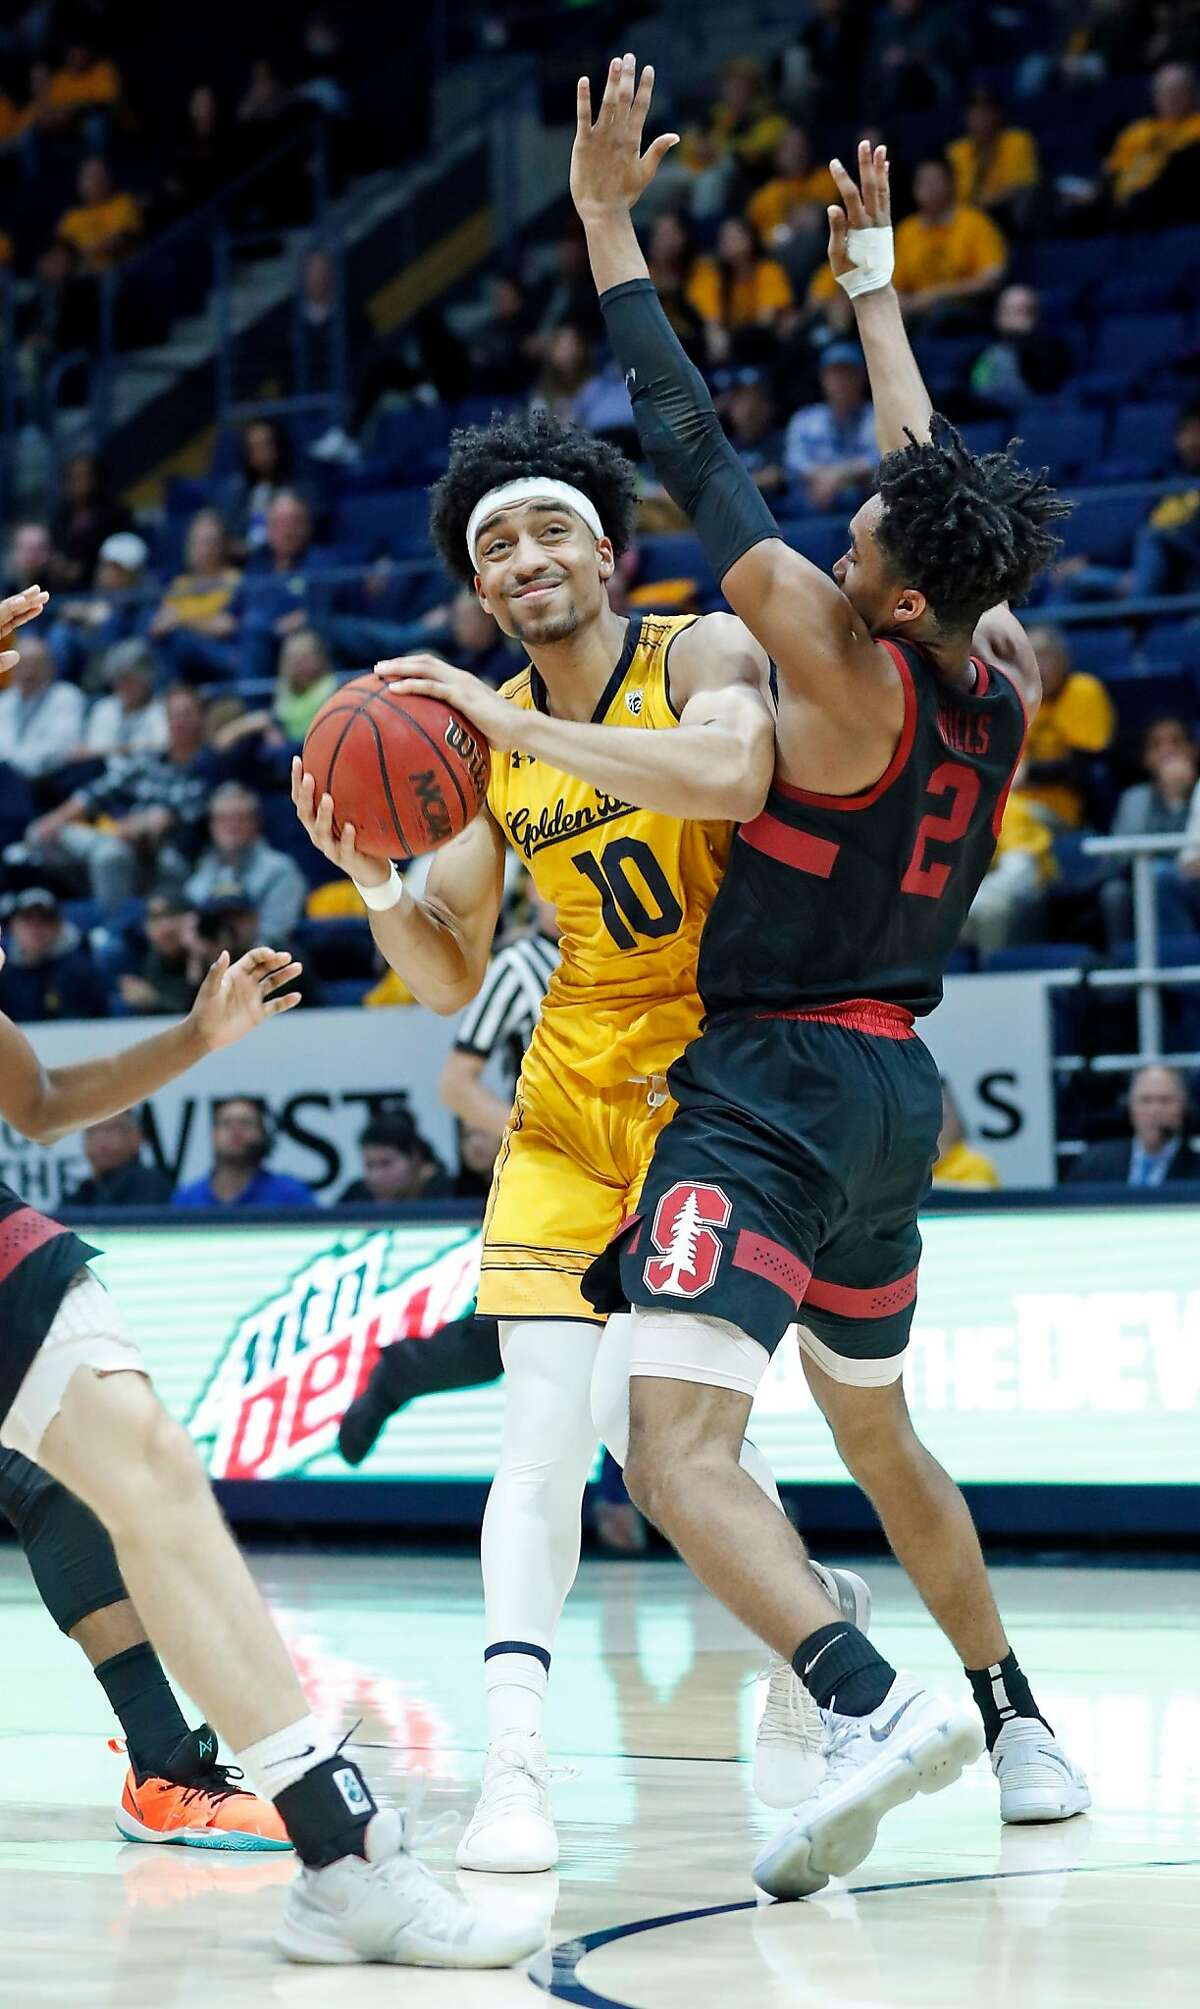 California's Justice Sueing drives into Stanford's Bryce Wills during Stanford's 84-81 win in Pac 12 Men's basketball game at Haas Pavilion in Berkeley, Calif., on Thursday, February 3, 2019.